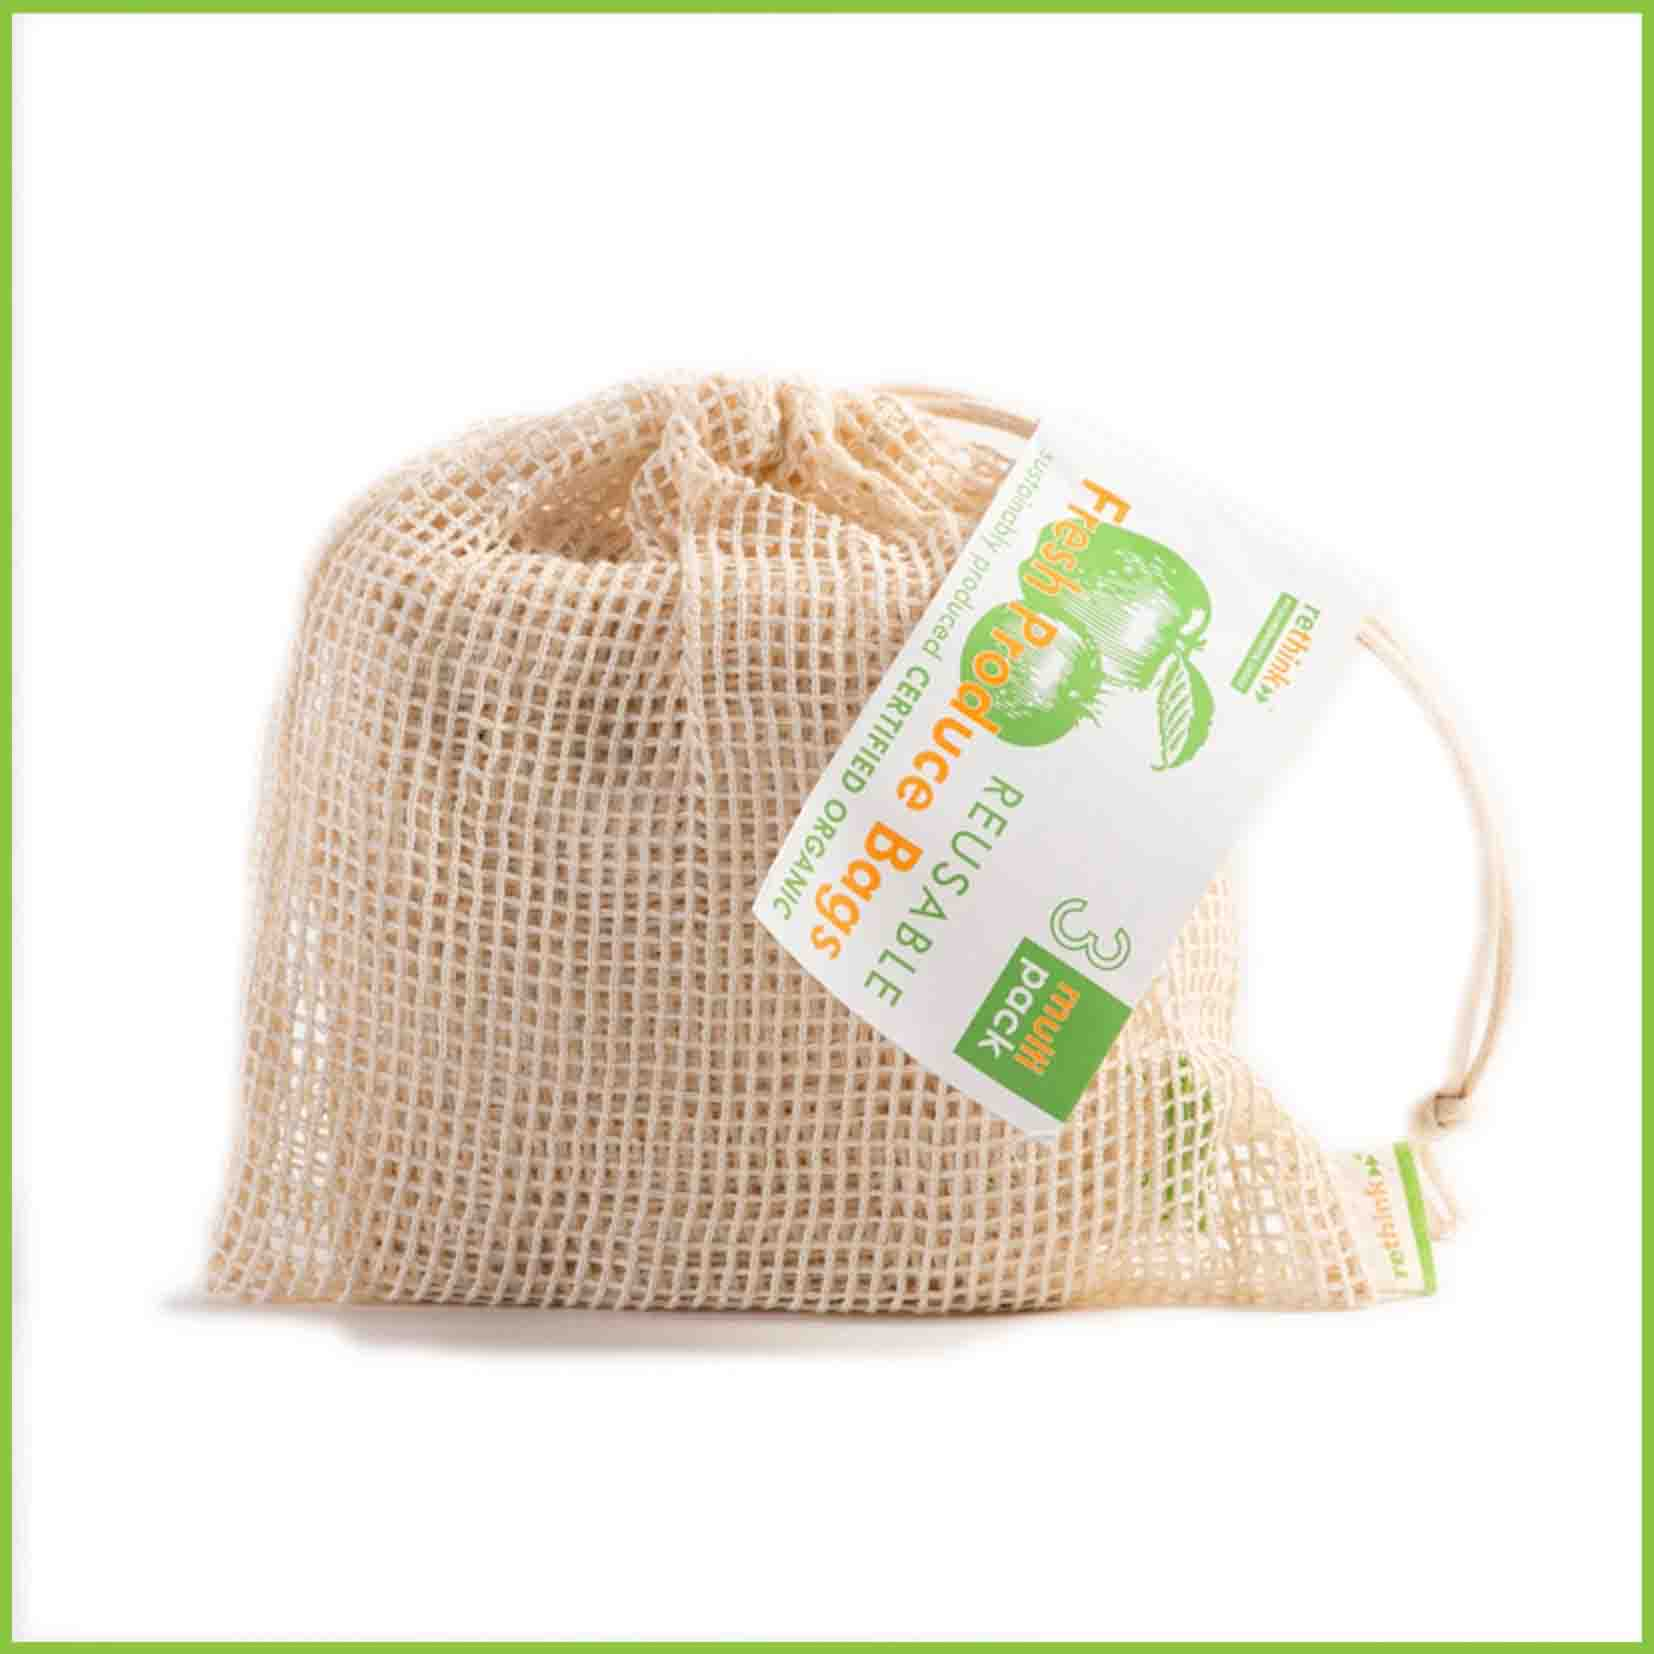 A multi pack of reusable veggie bags from Rethink.